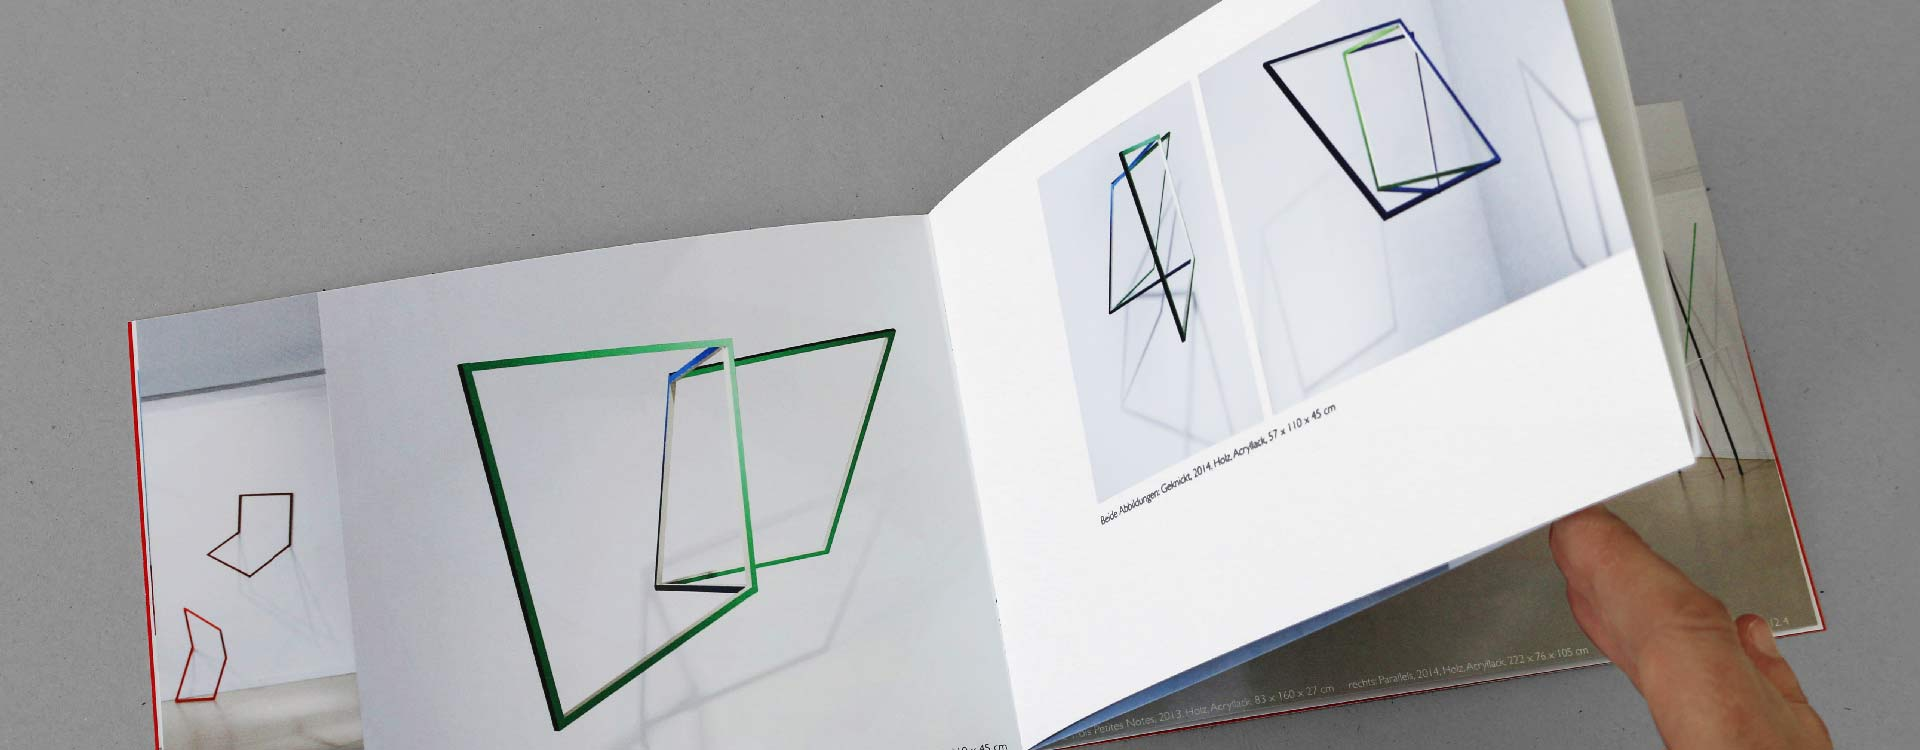 Catalogue Moving Space in the rk Gallery for Contemporary Art, Berlin; Design: Kattrin Richter | Graphic Design Studio